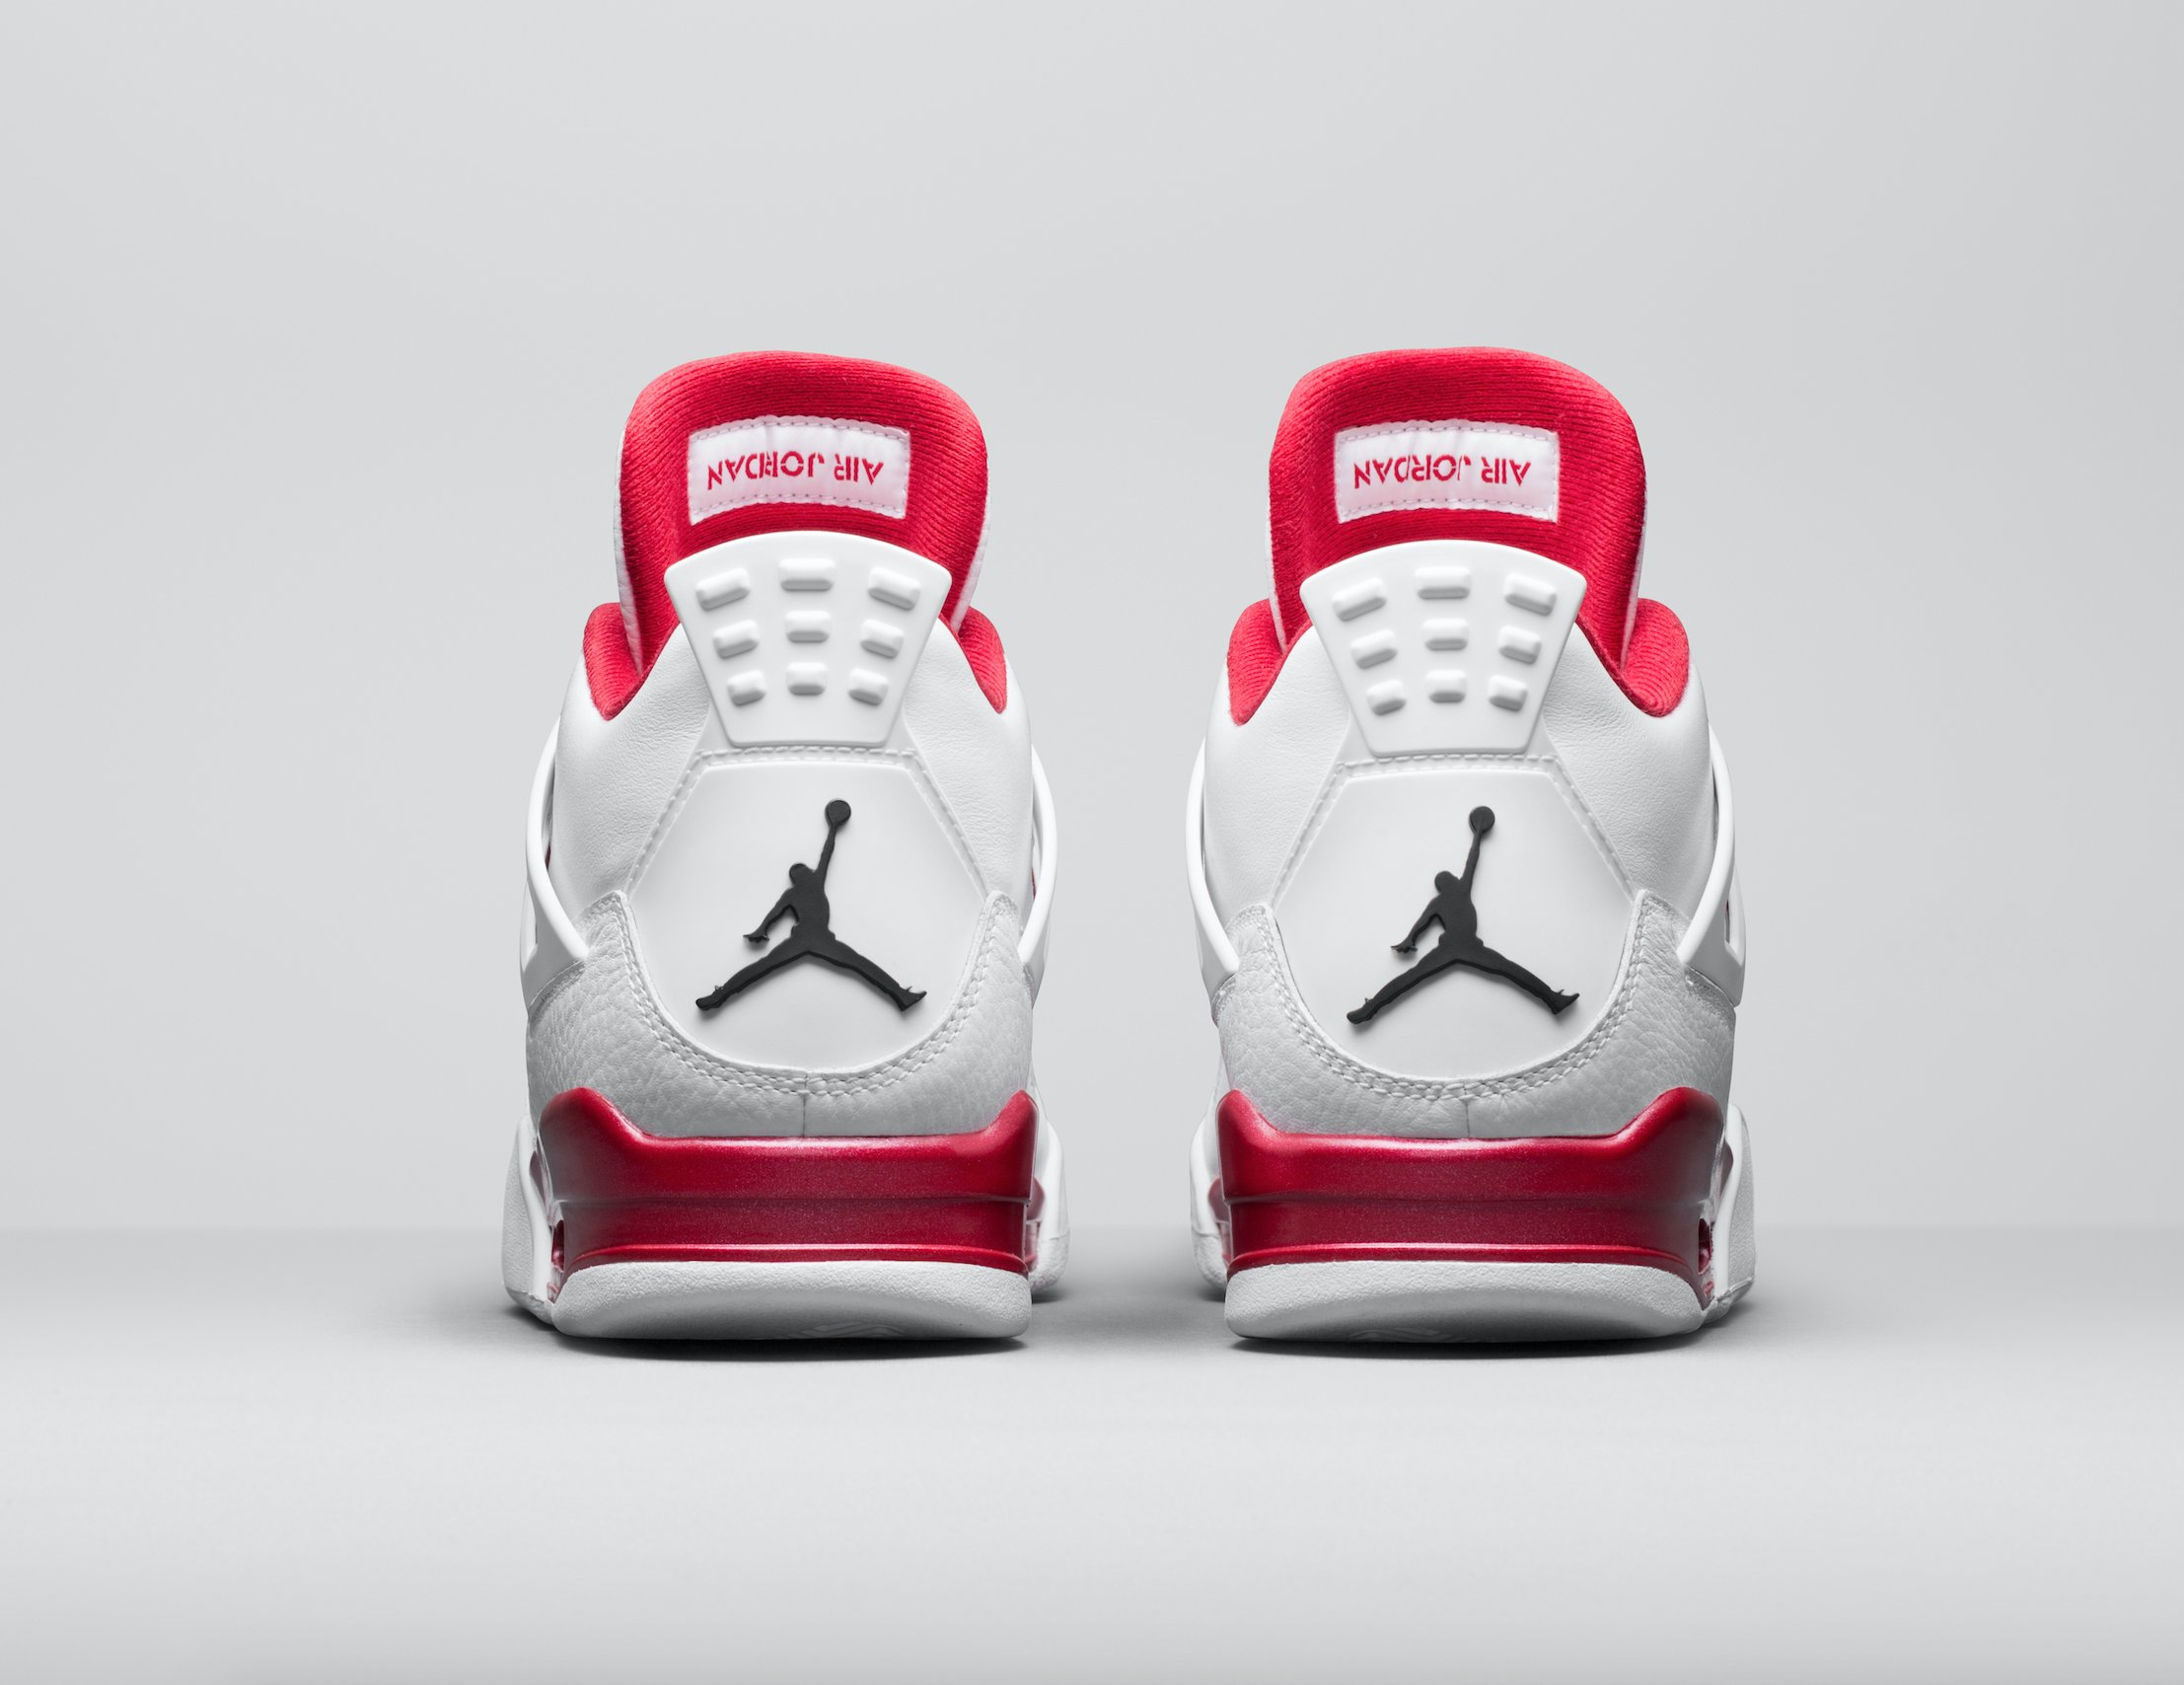 e89cafc8513 Air Jordan 4 Retro Alternate 89 Release Date - Air 23 - Air Jordan ...